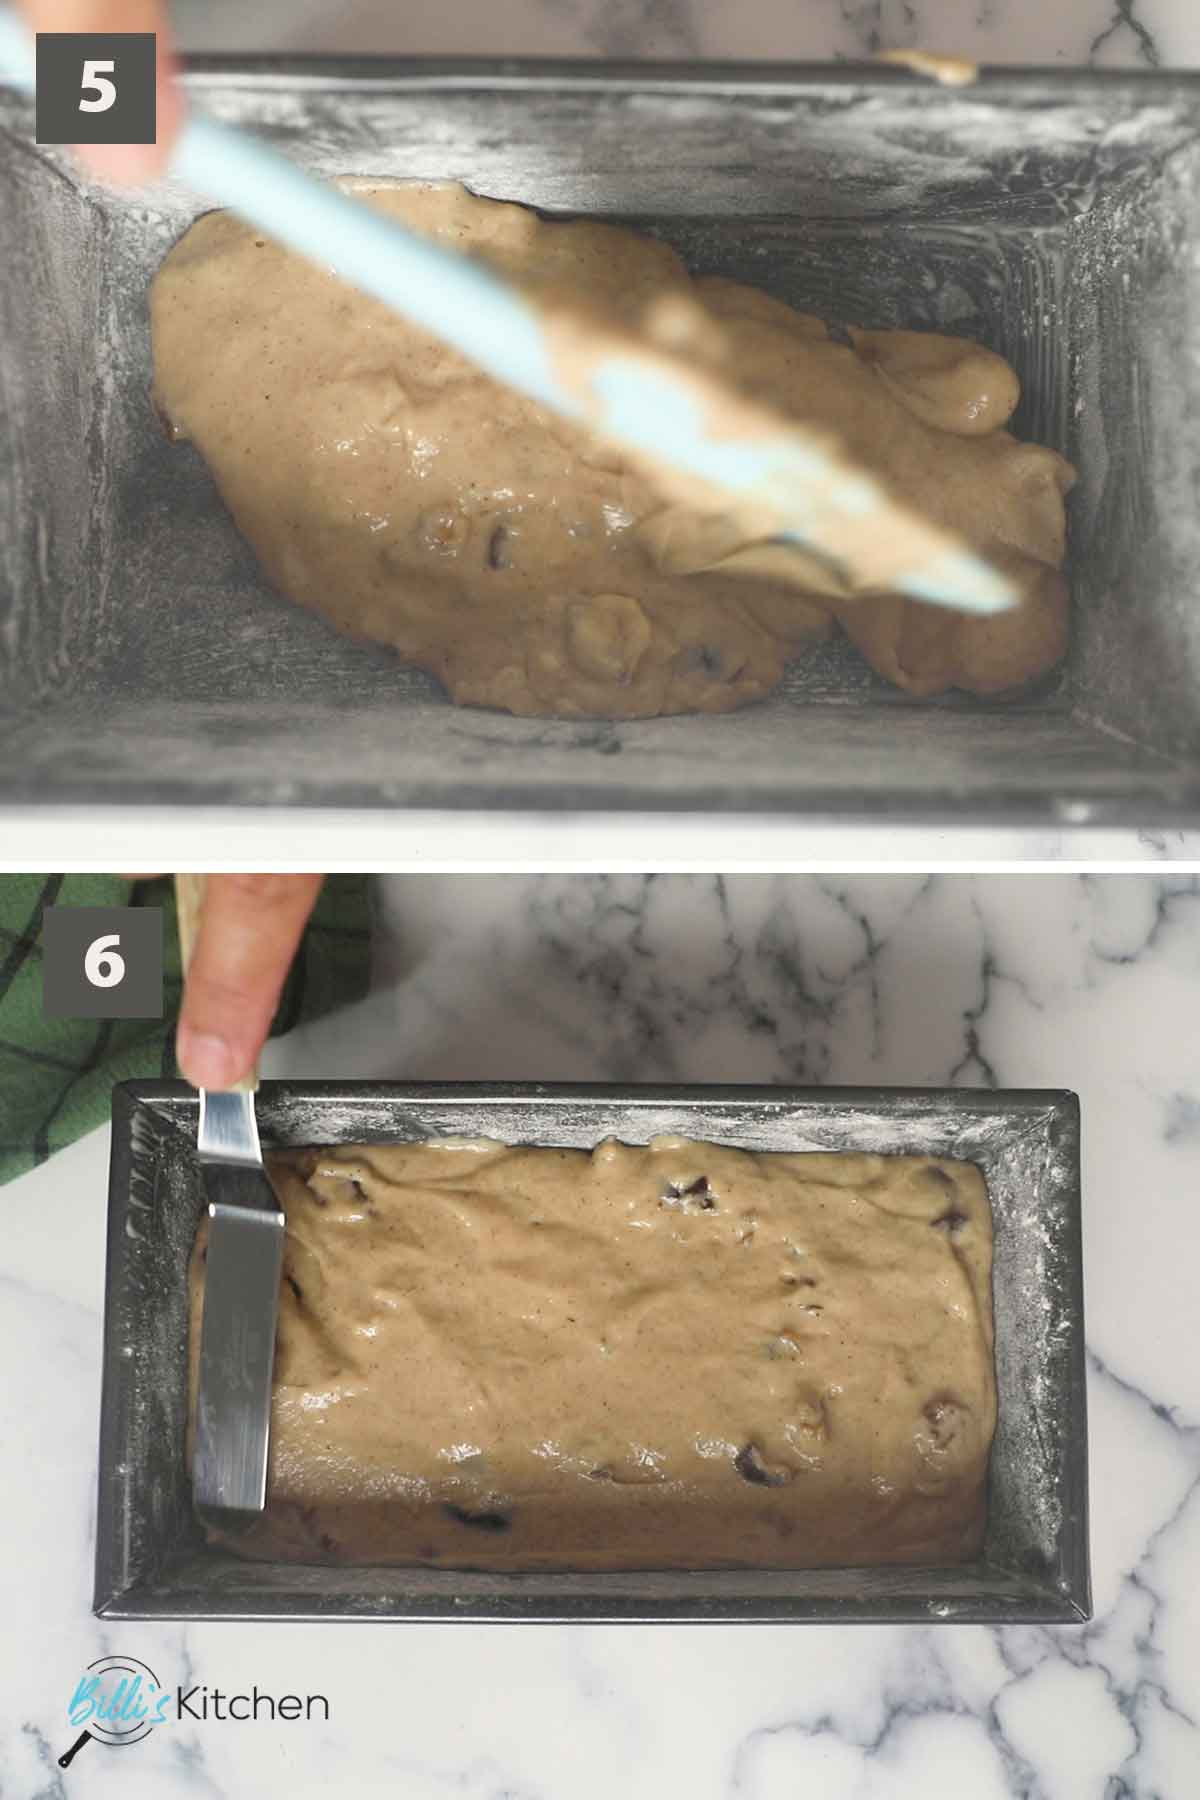 Second part of a collage of images showing step by step process on how to make date nut bread at home.